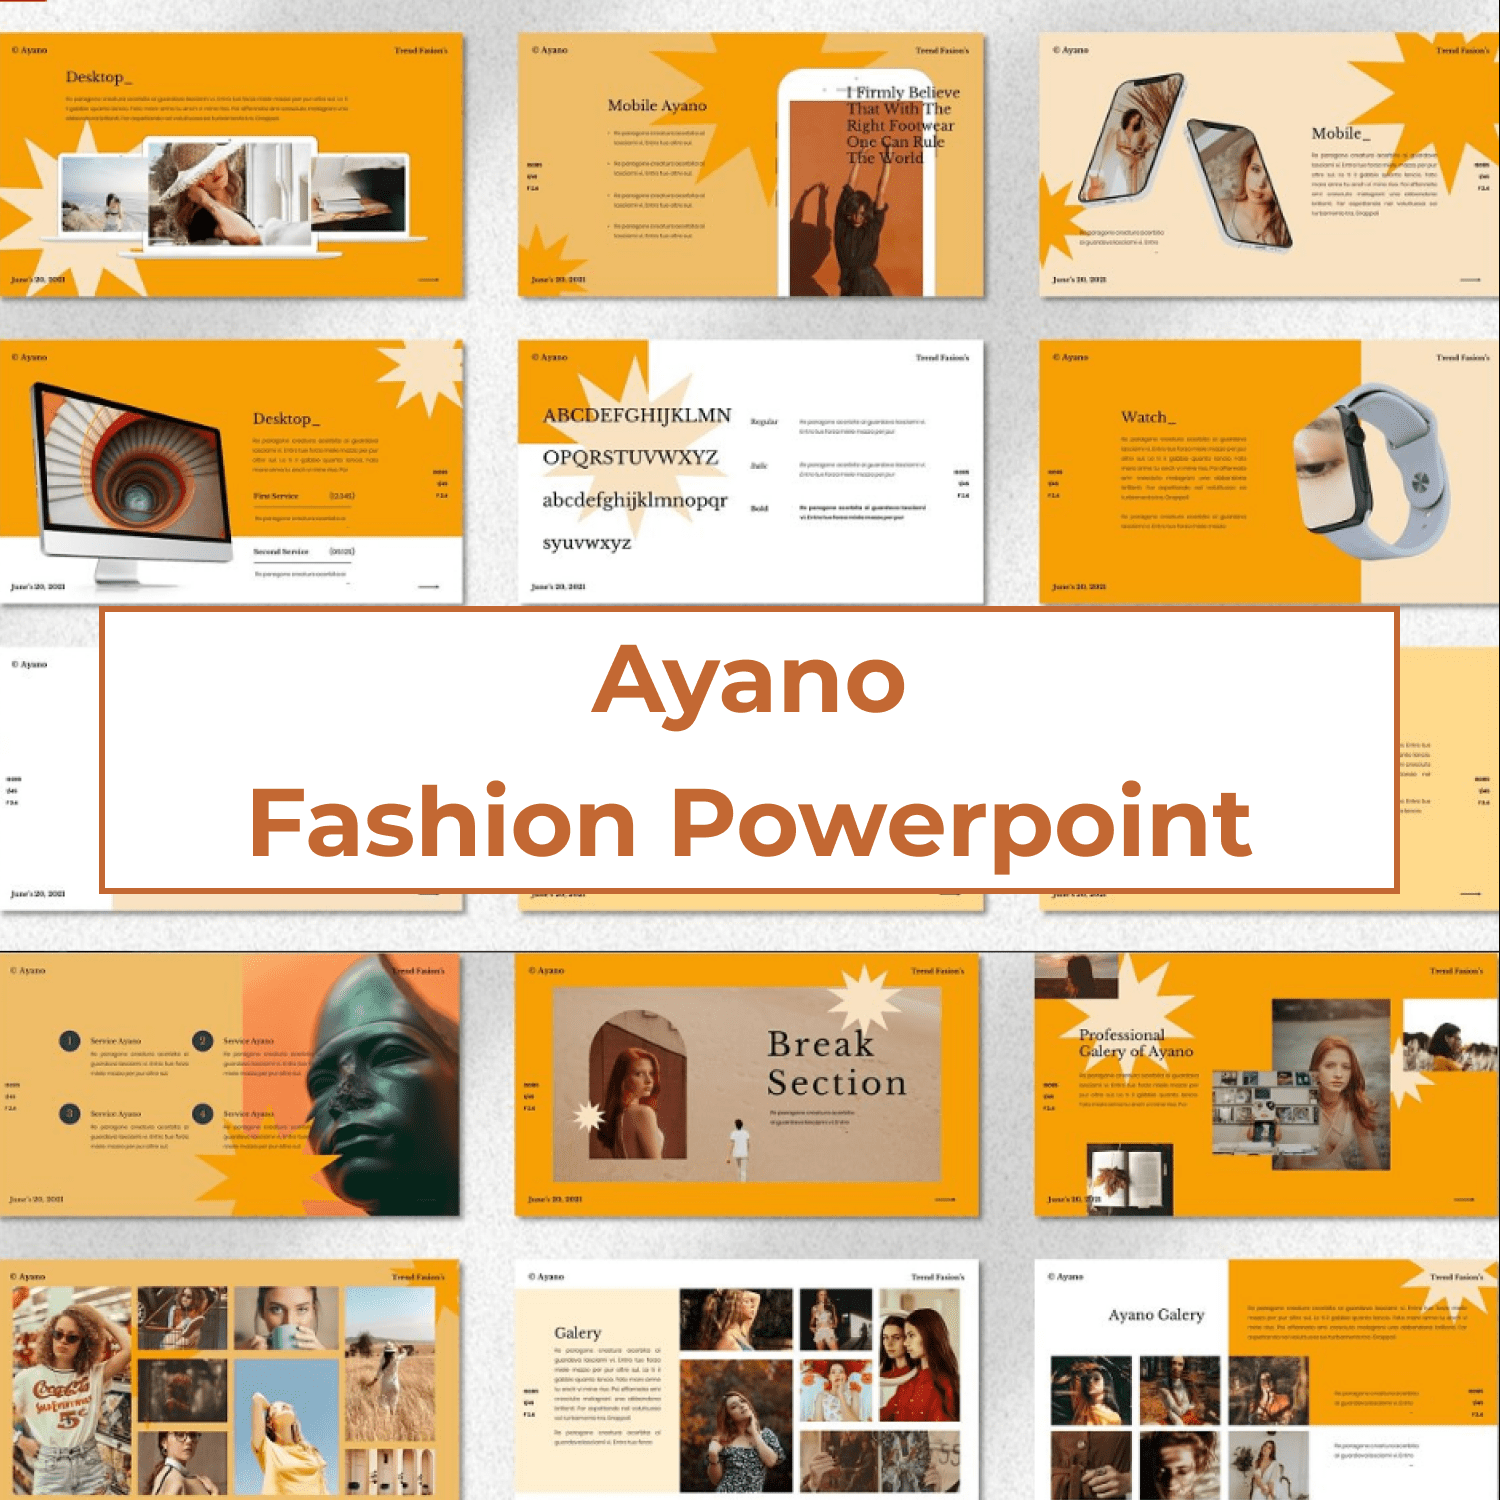 Ayano - Fashion Powerpoint cover image.